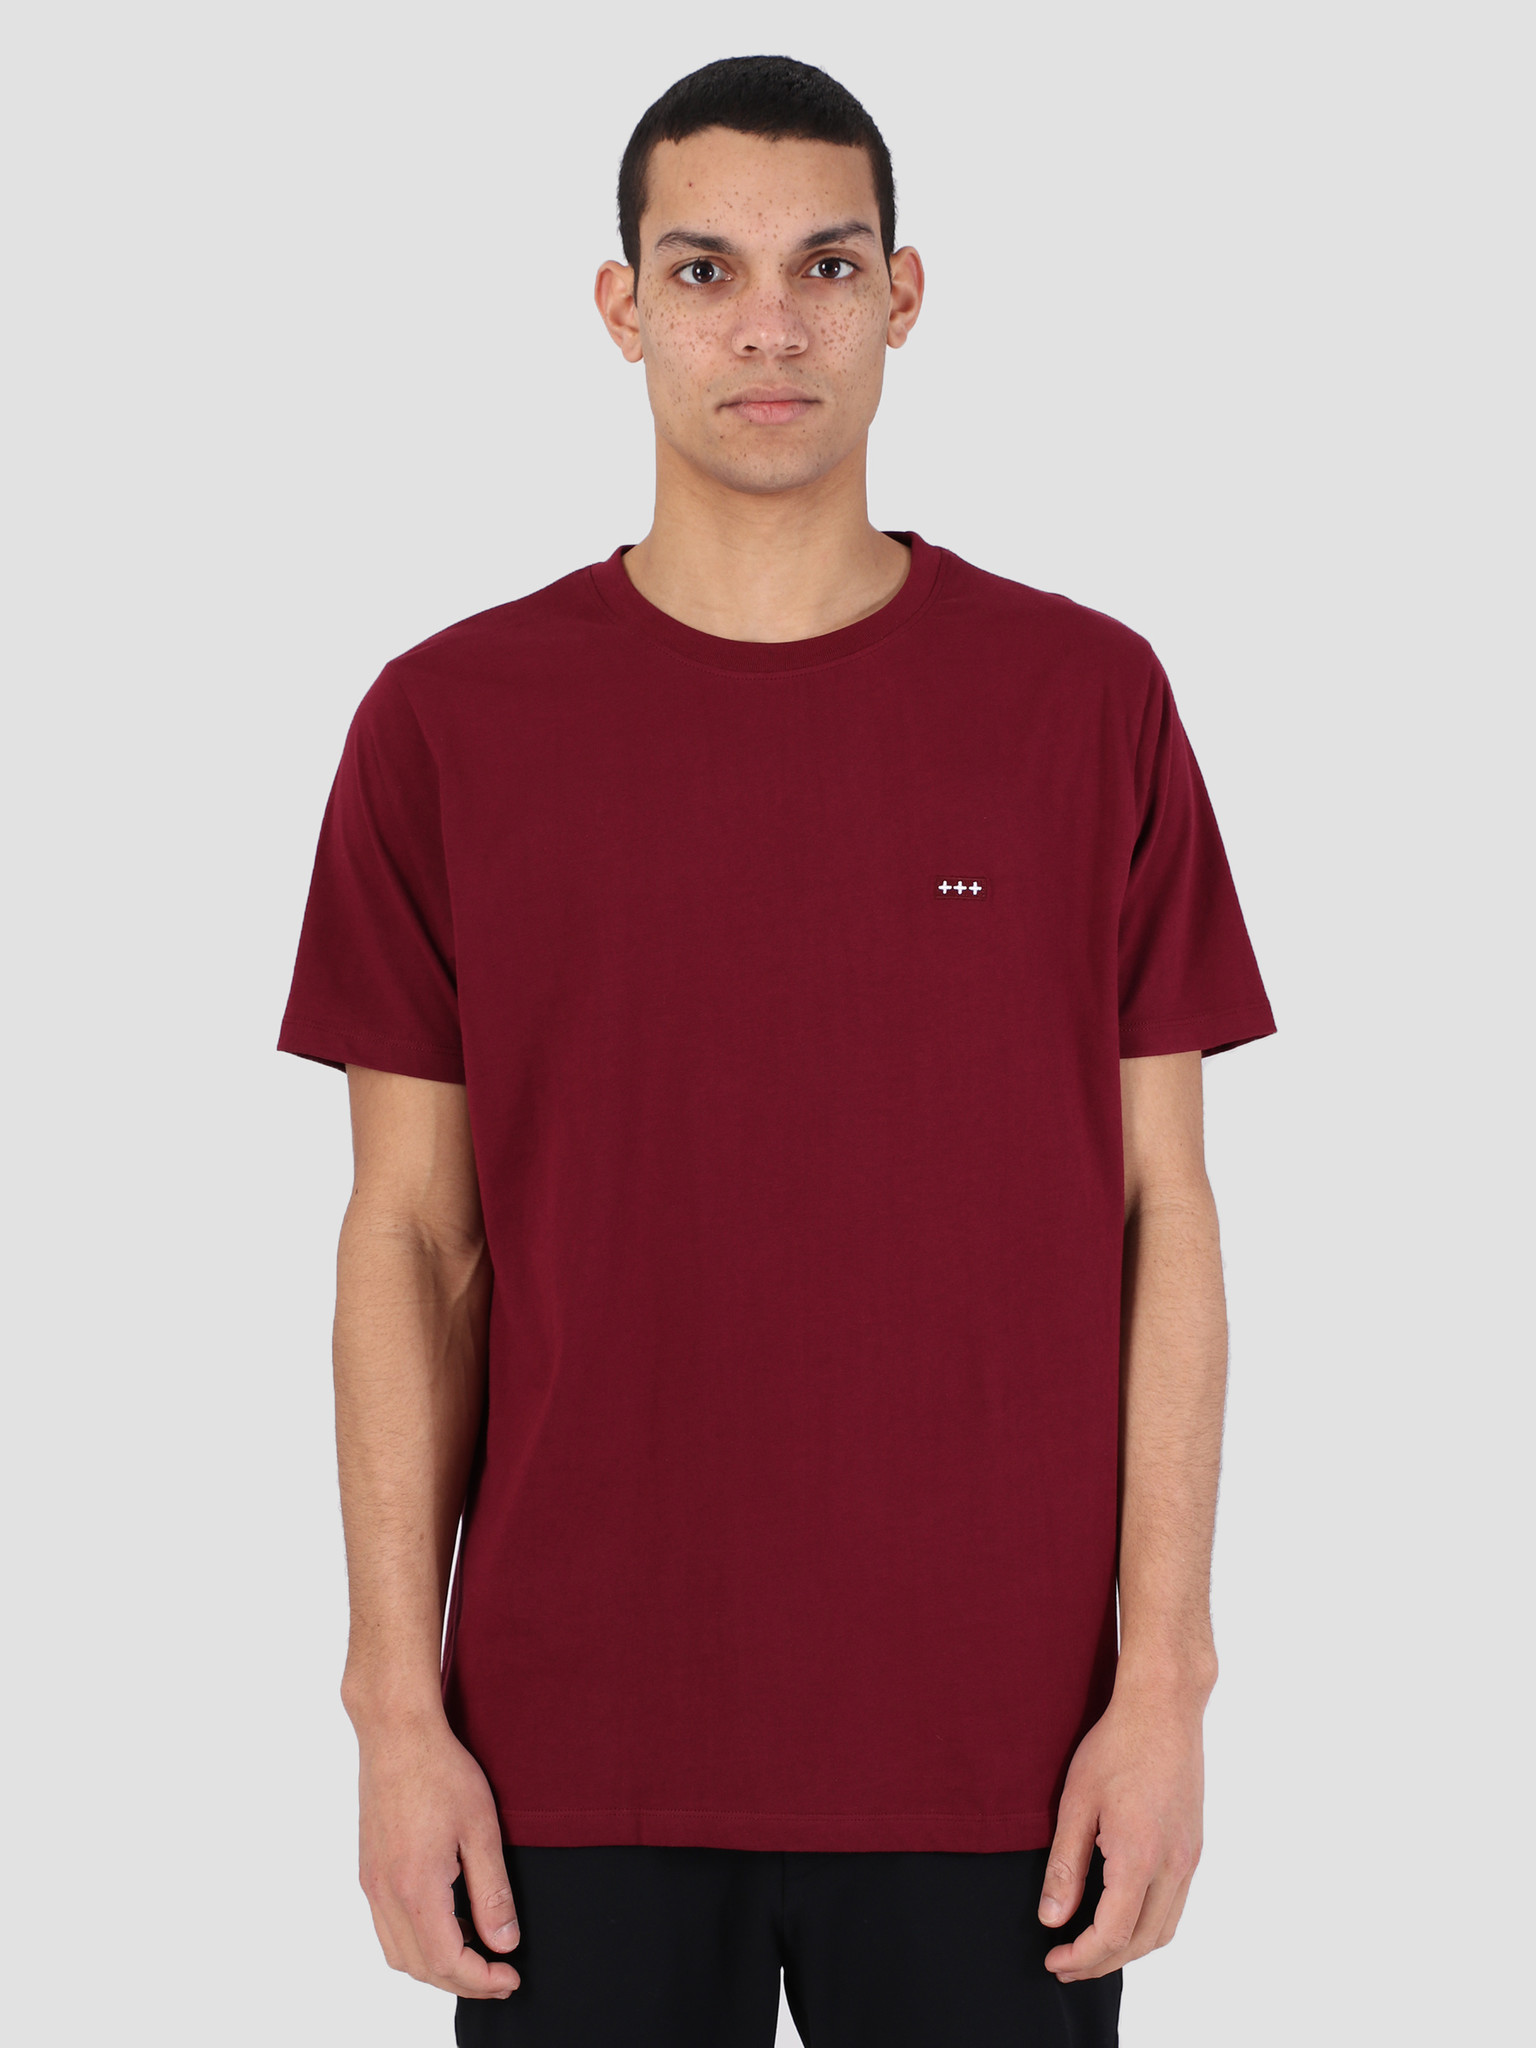 Quality Blanks Quality Blanks QB03 Patch Logo T-Shirt Burgundy Red